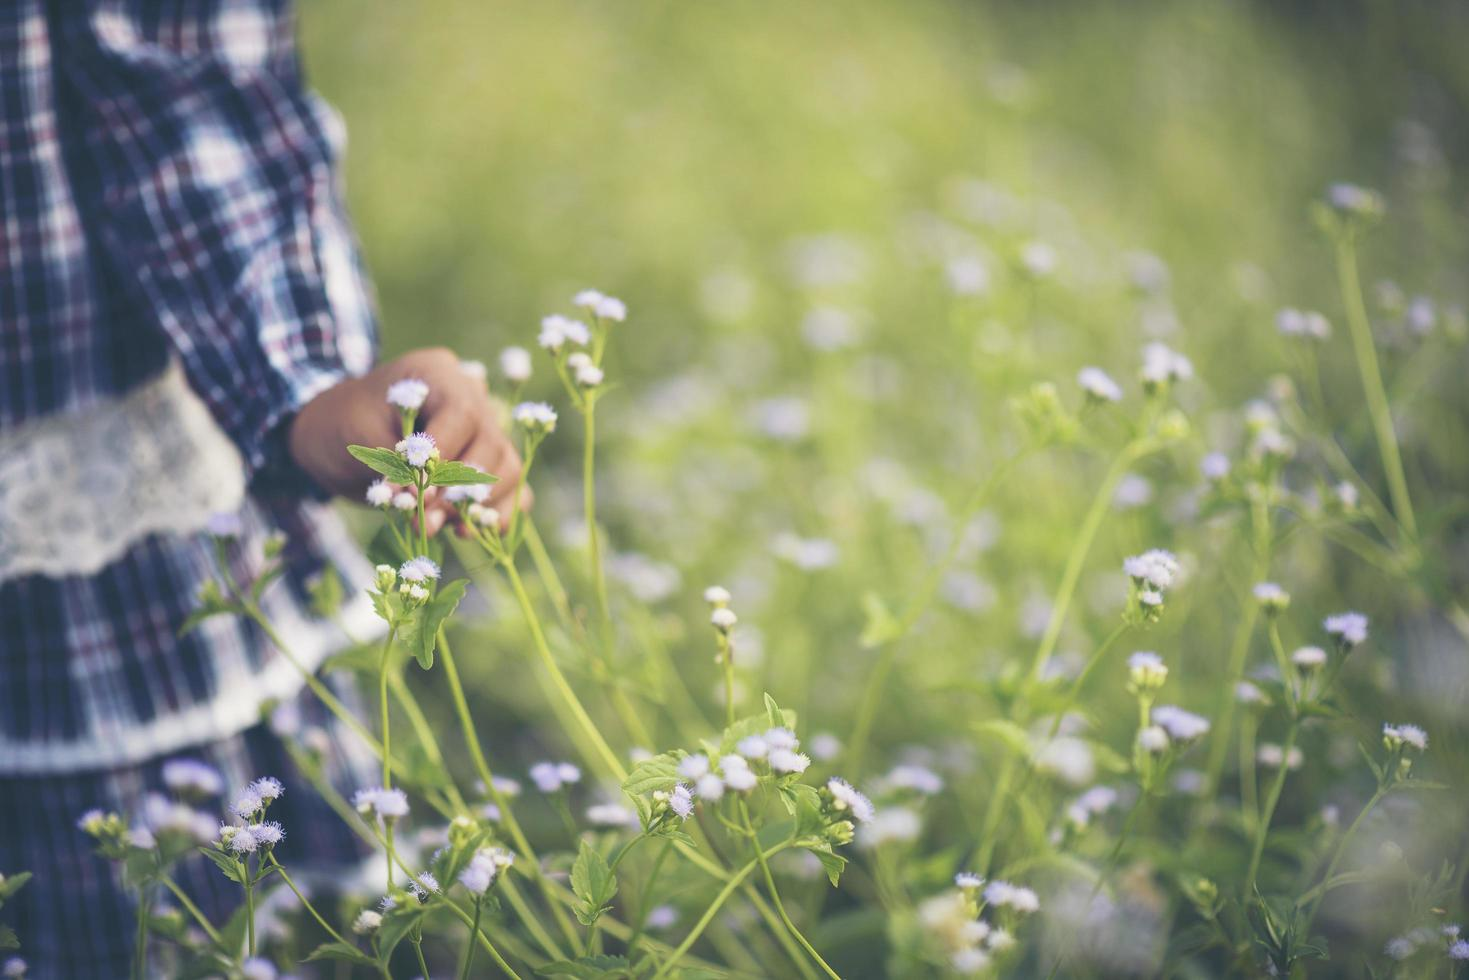 Close-up of a little girl's hand touching wildflowers photo